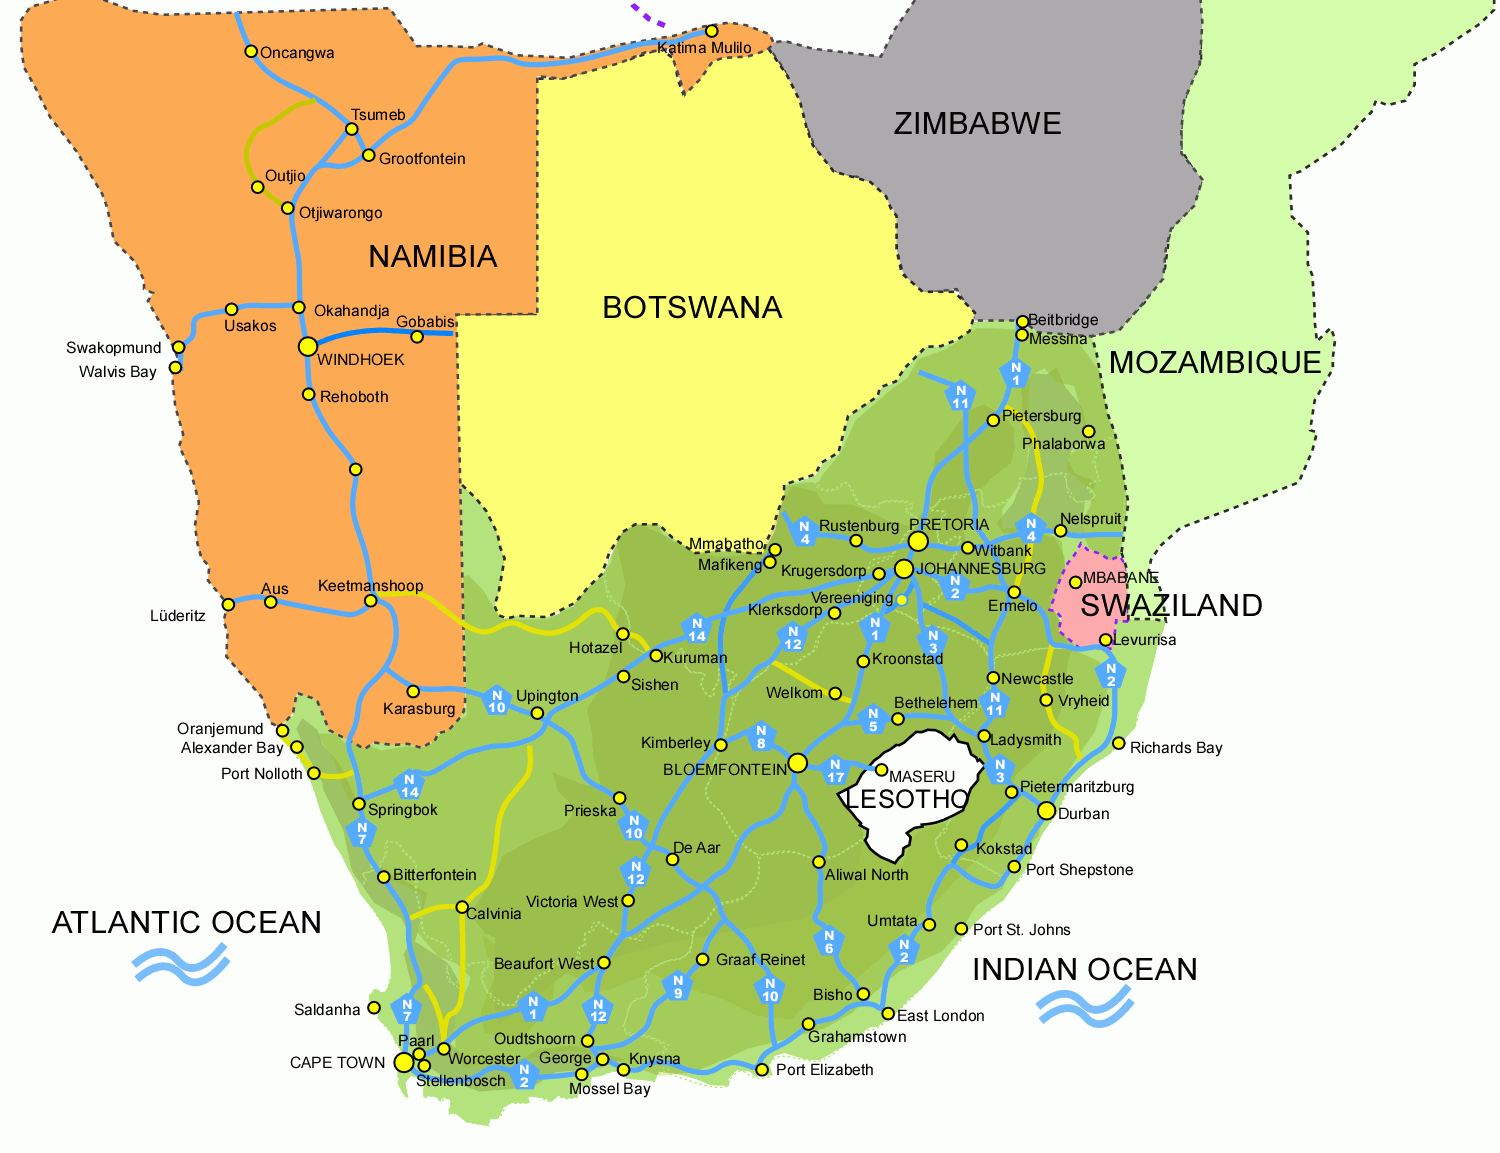 South Africa And Adjacent African Countries With FriendsTravelcom - South africa map countries